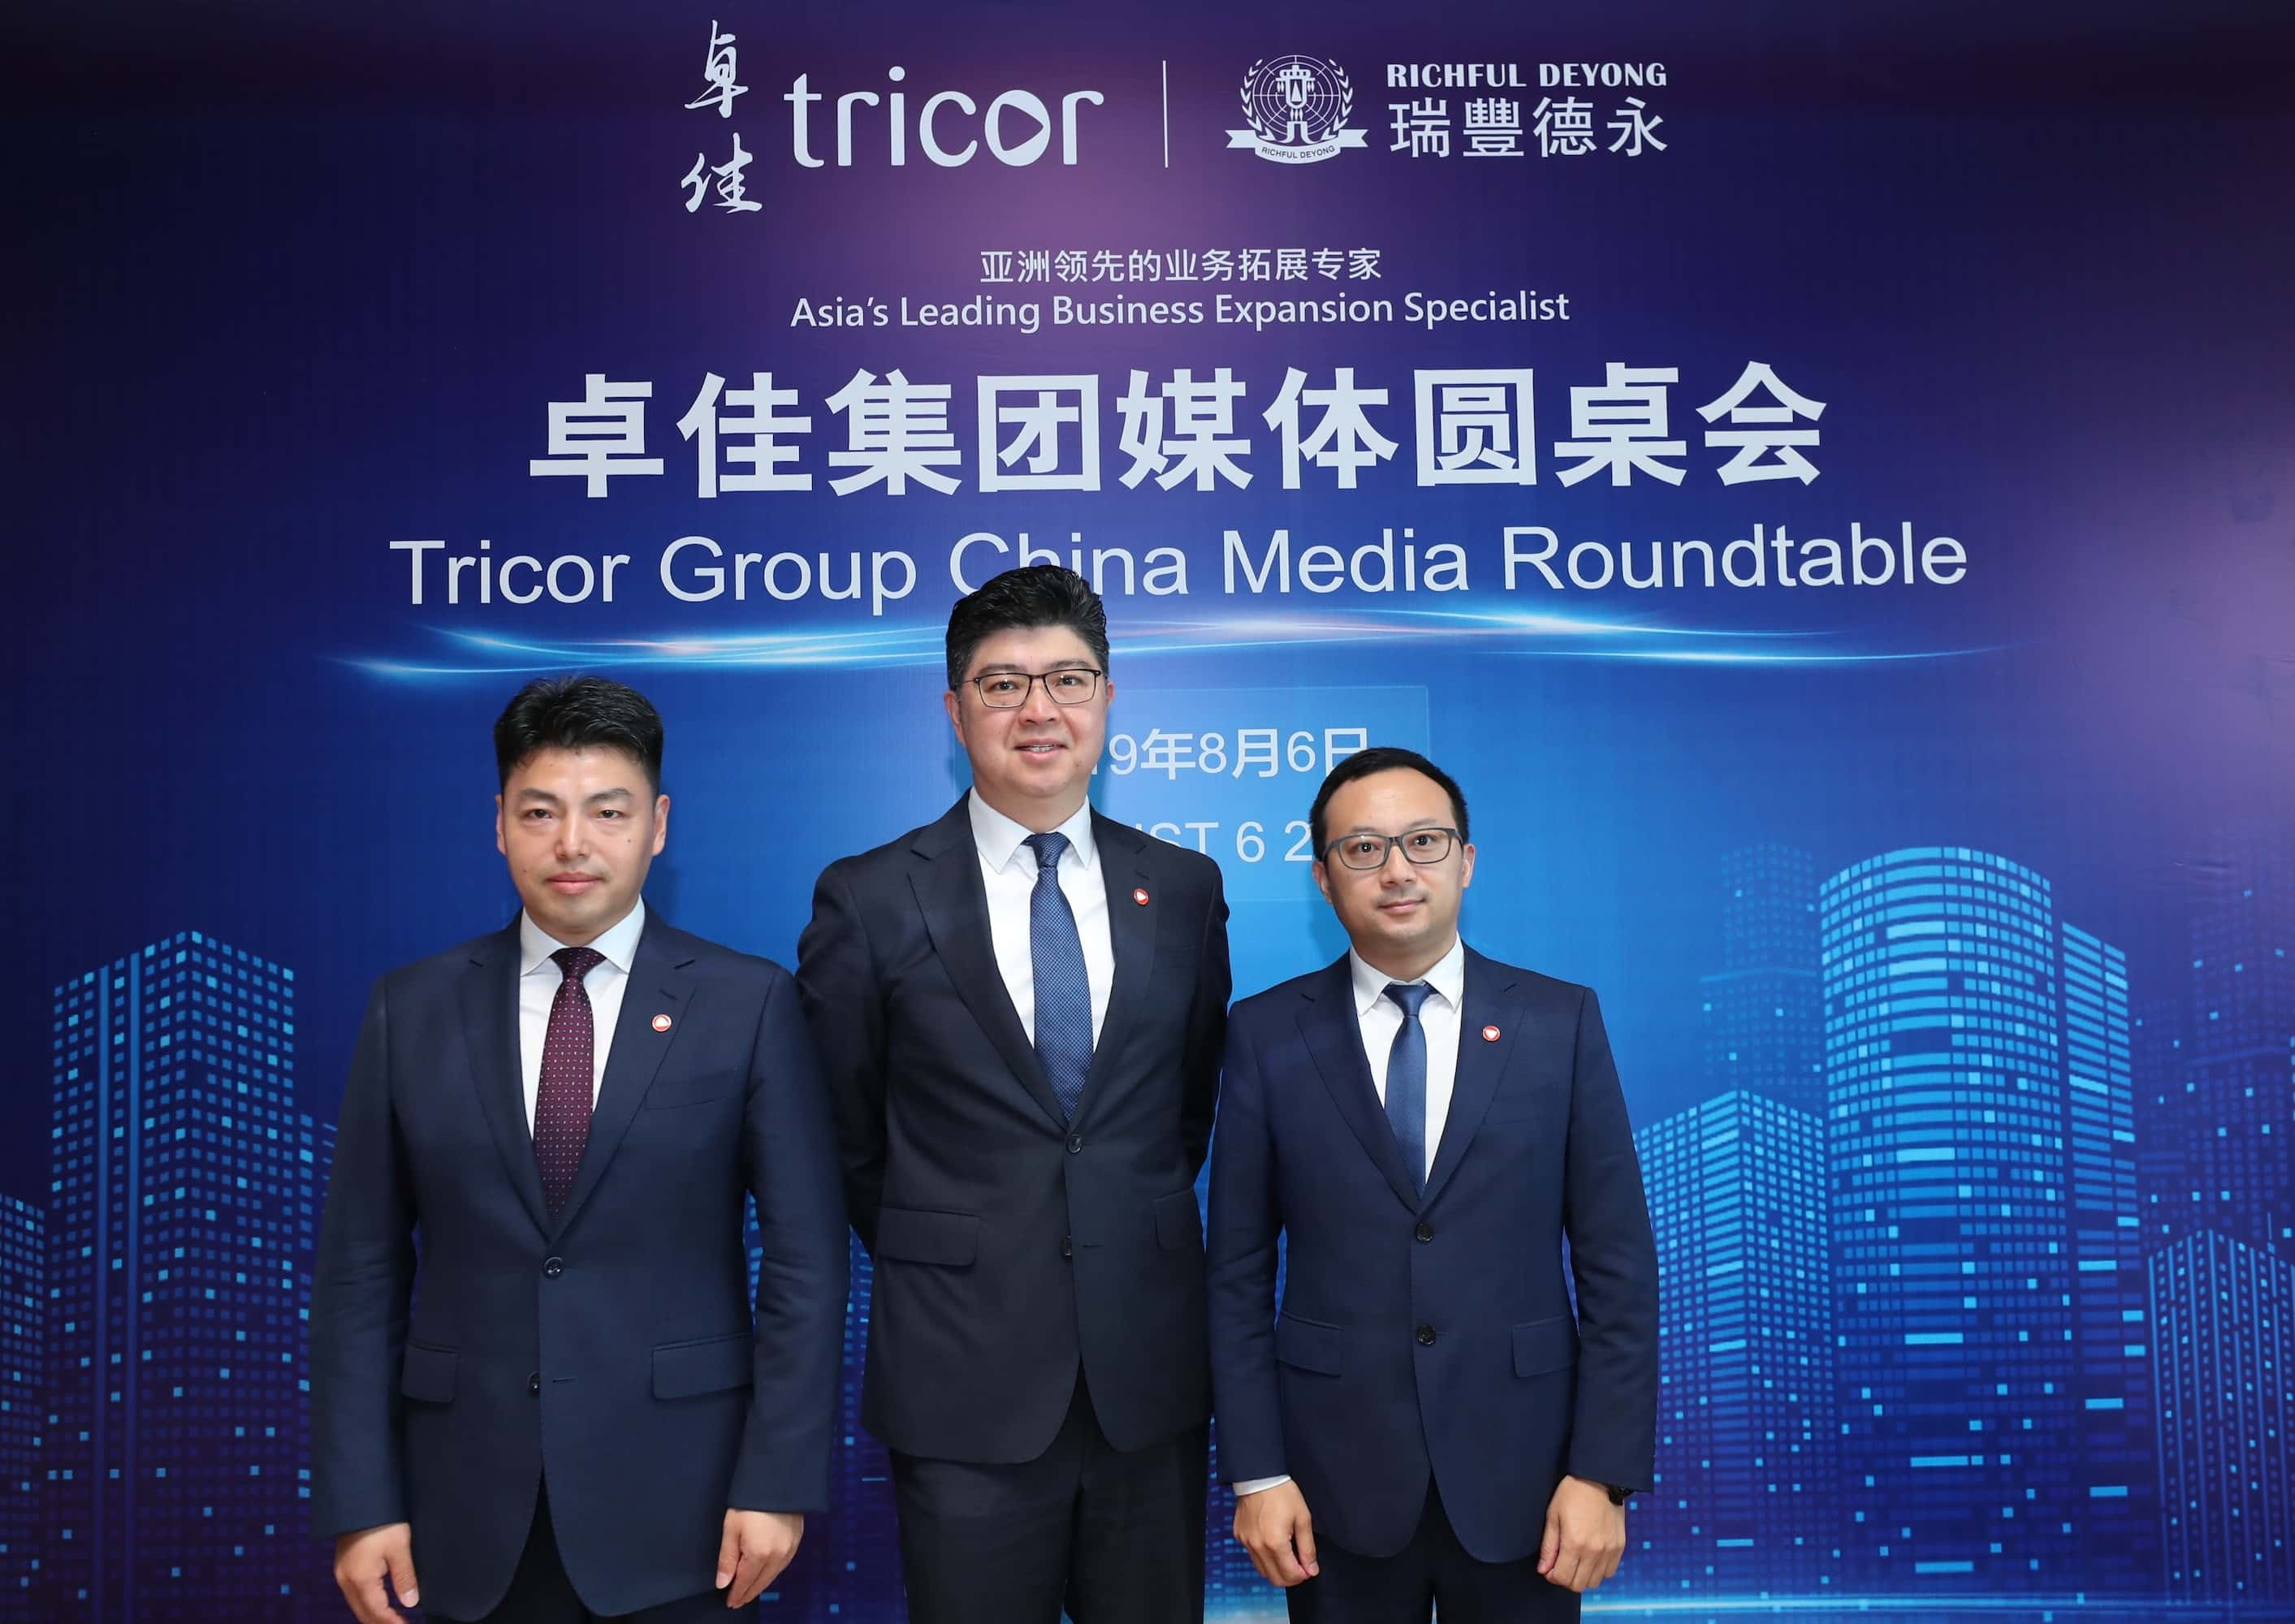 Tricor Group accelerates expansion & synergies in Mainland China following strategic acquisitions and alliances